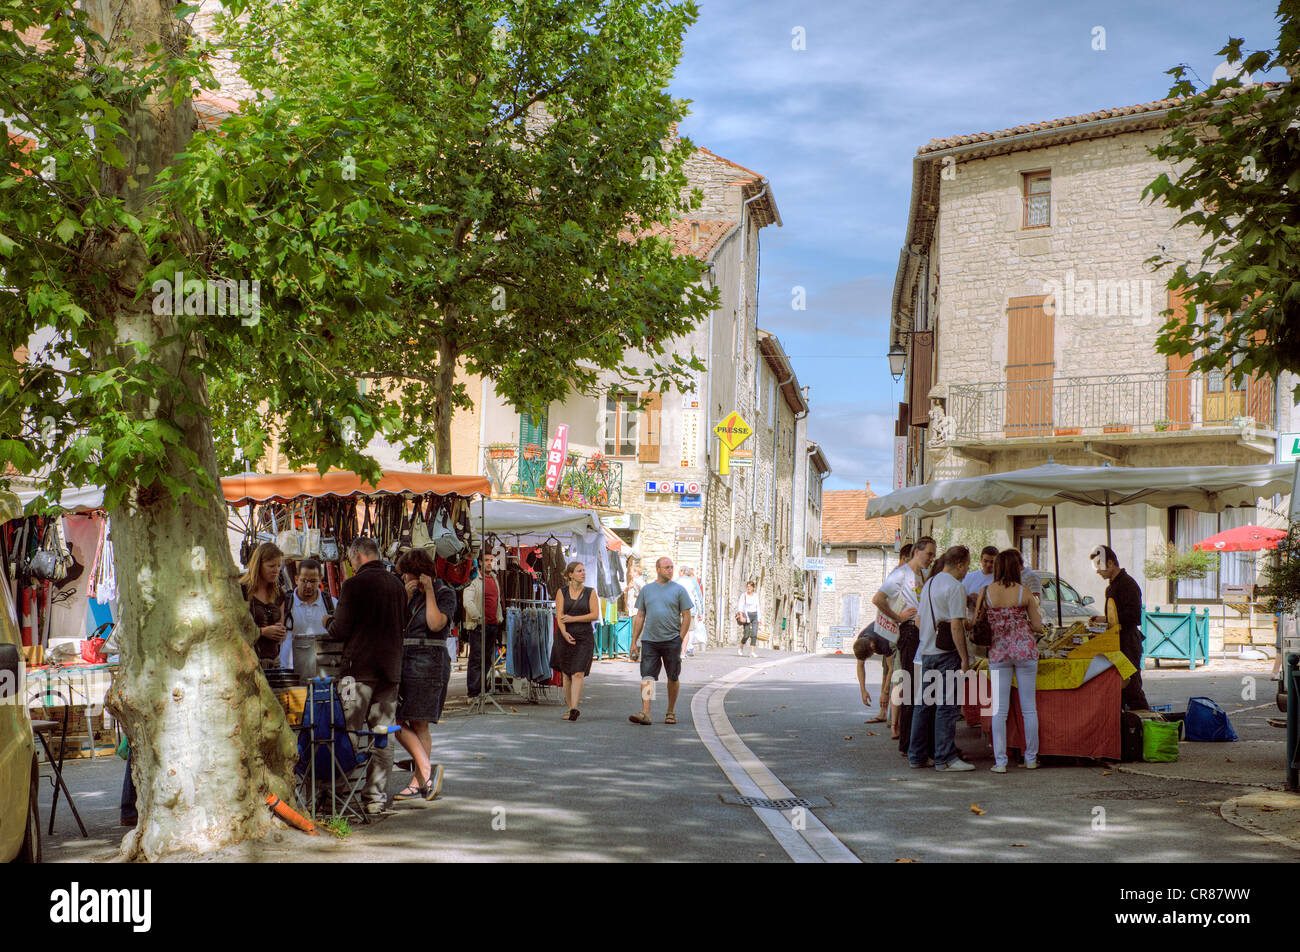 France, Gard, Barjac, Renaissance city between Ceze valley and Ardeche in the Provencal Gard, Friday market day - Stock Image